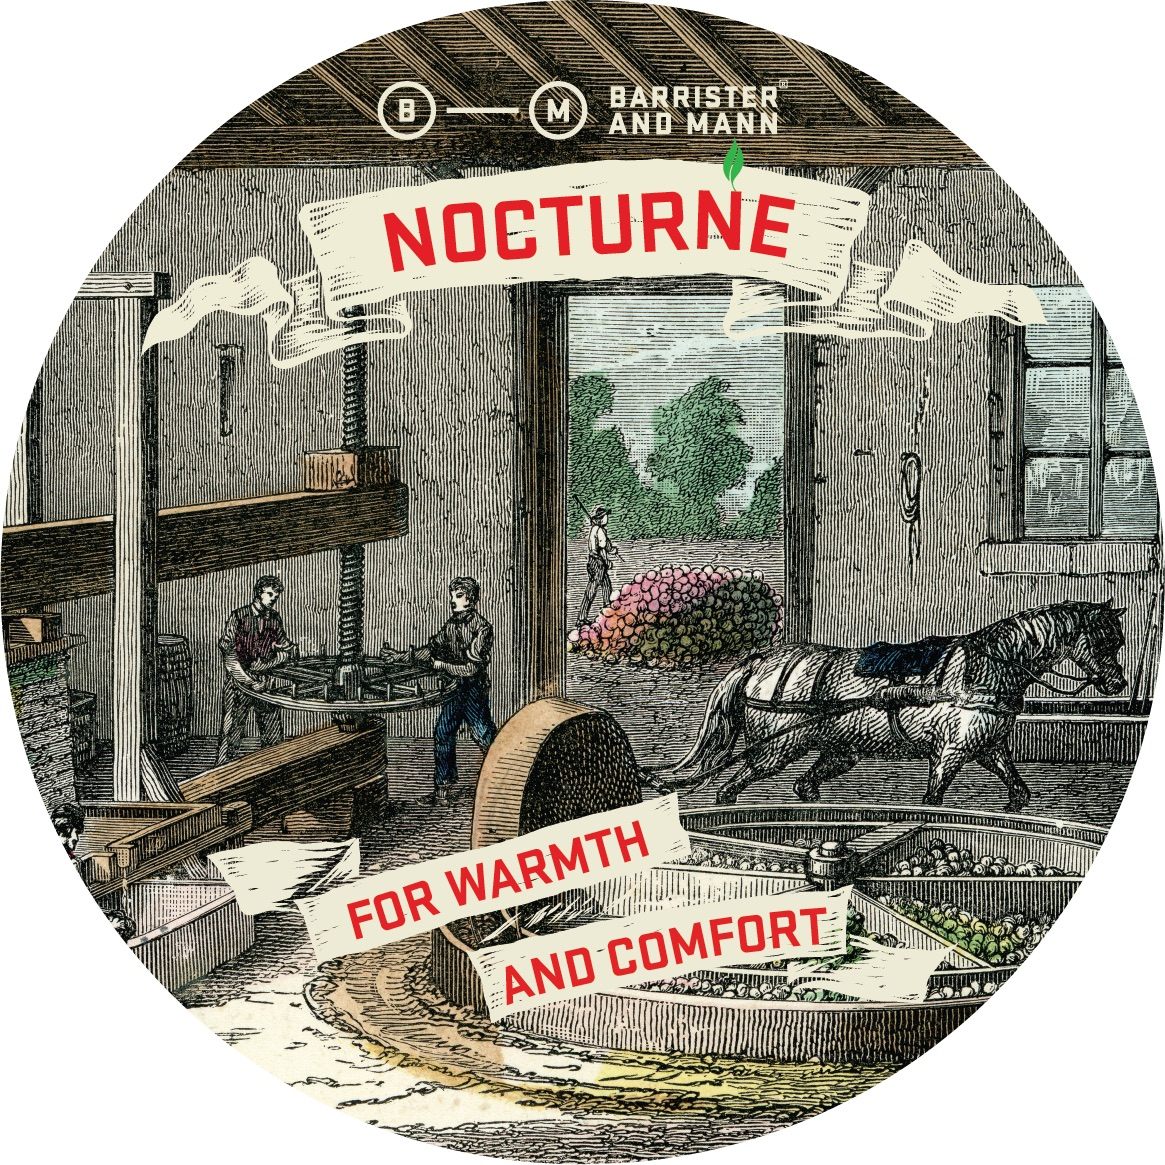 Barrister and Mann - Nocturne - Soap image